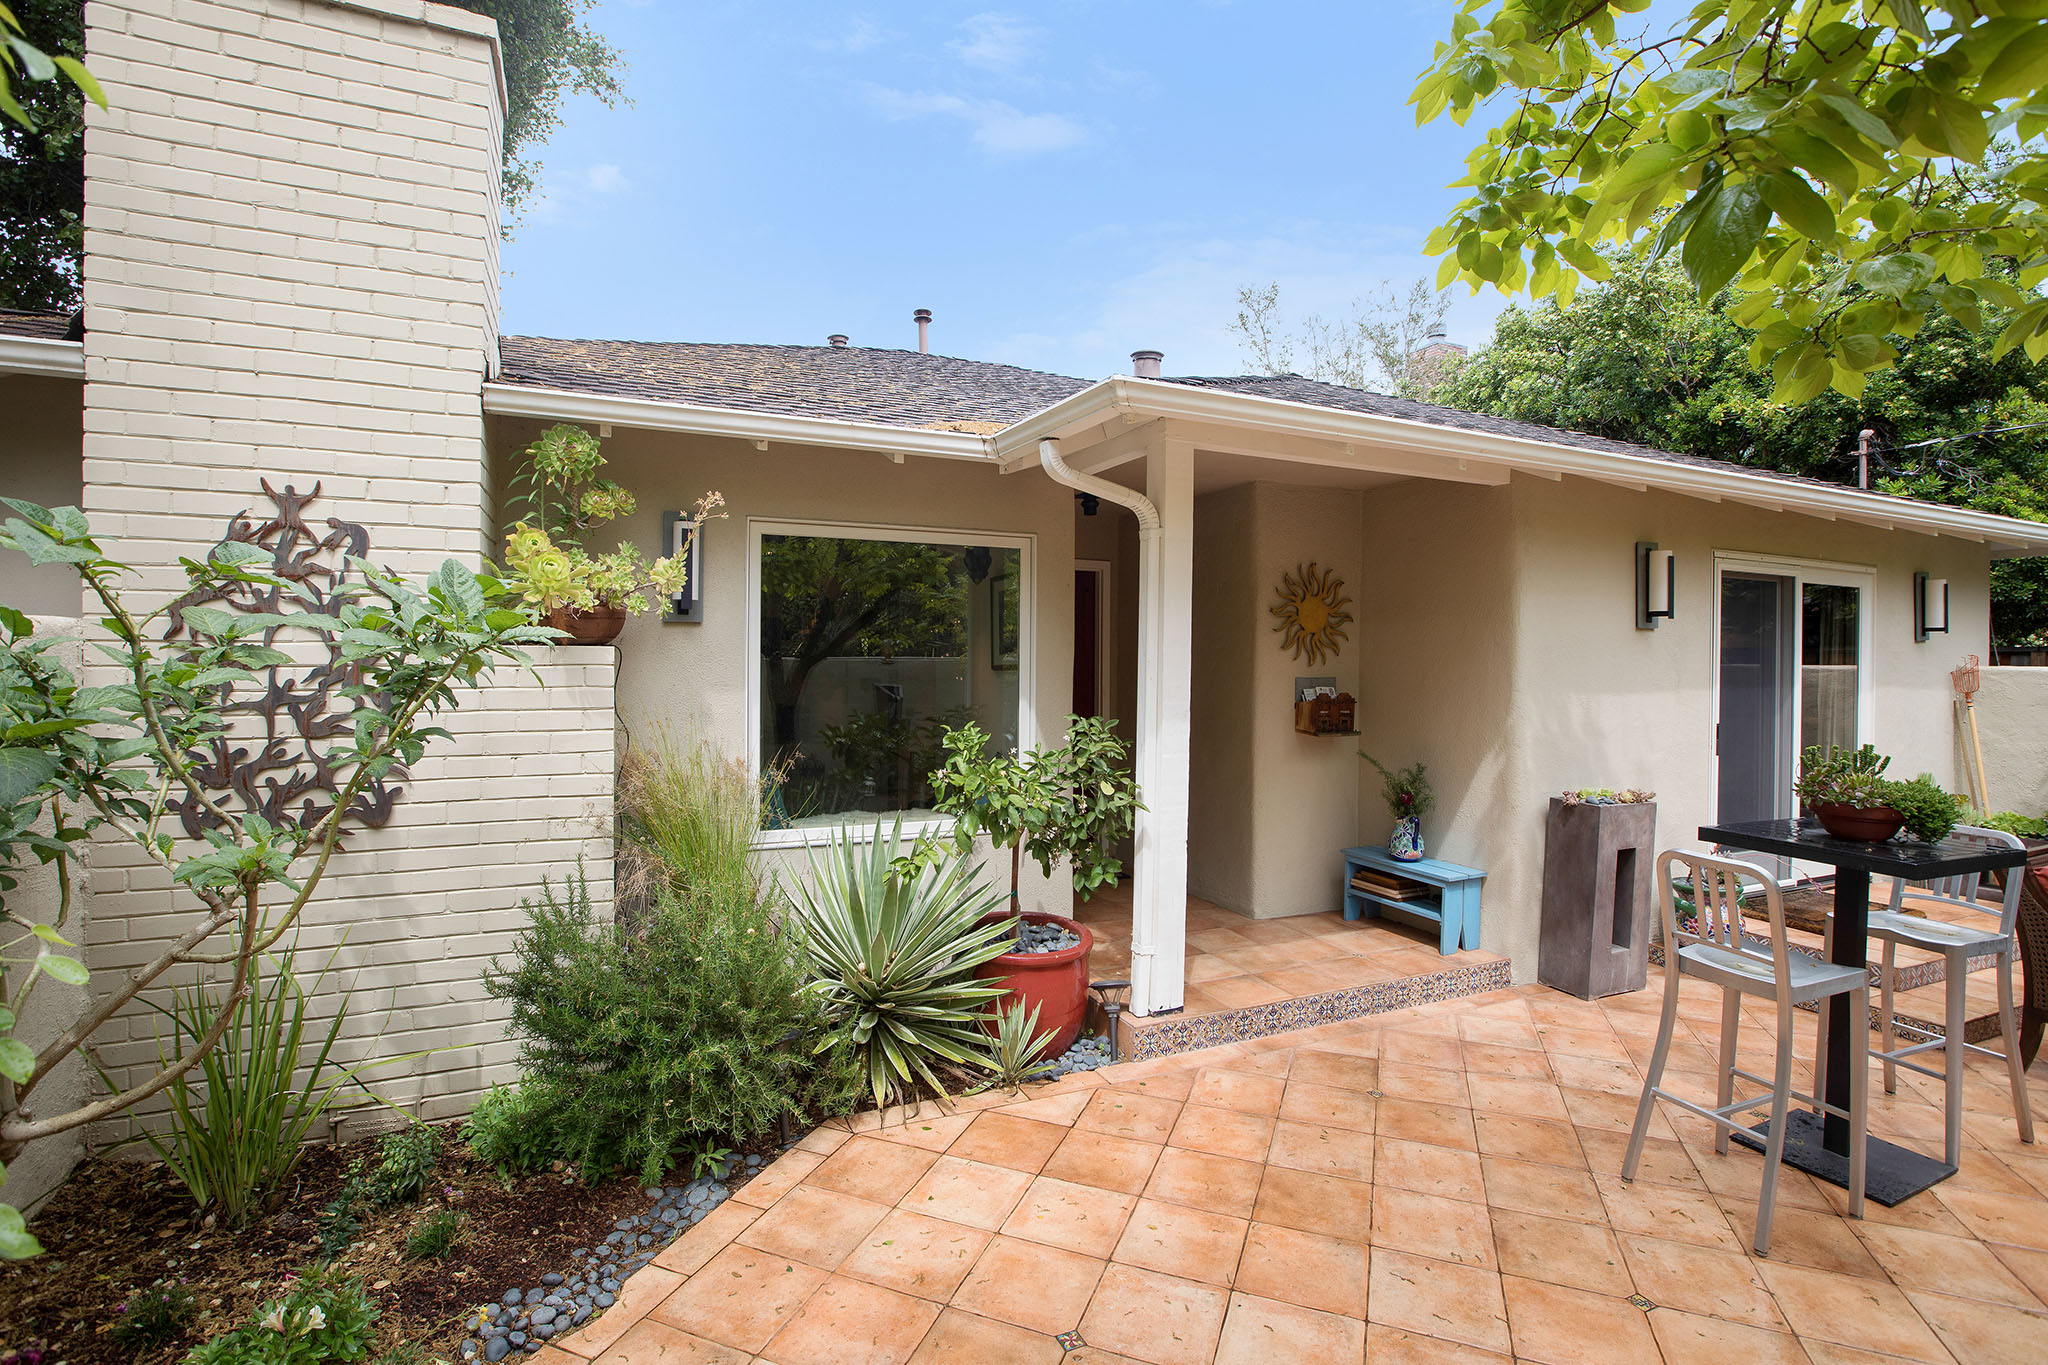 811 Channing Ave, Palo Alto | $3,300,000